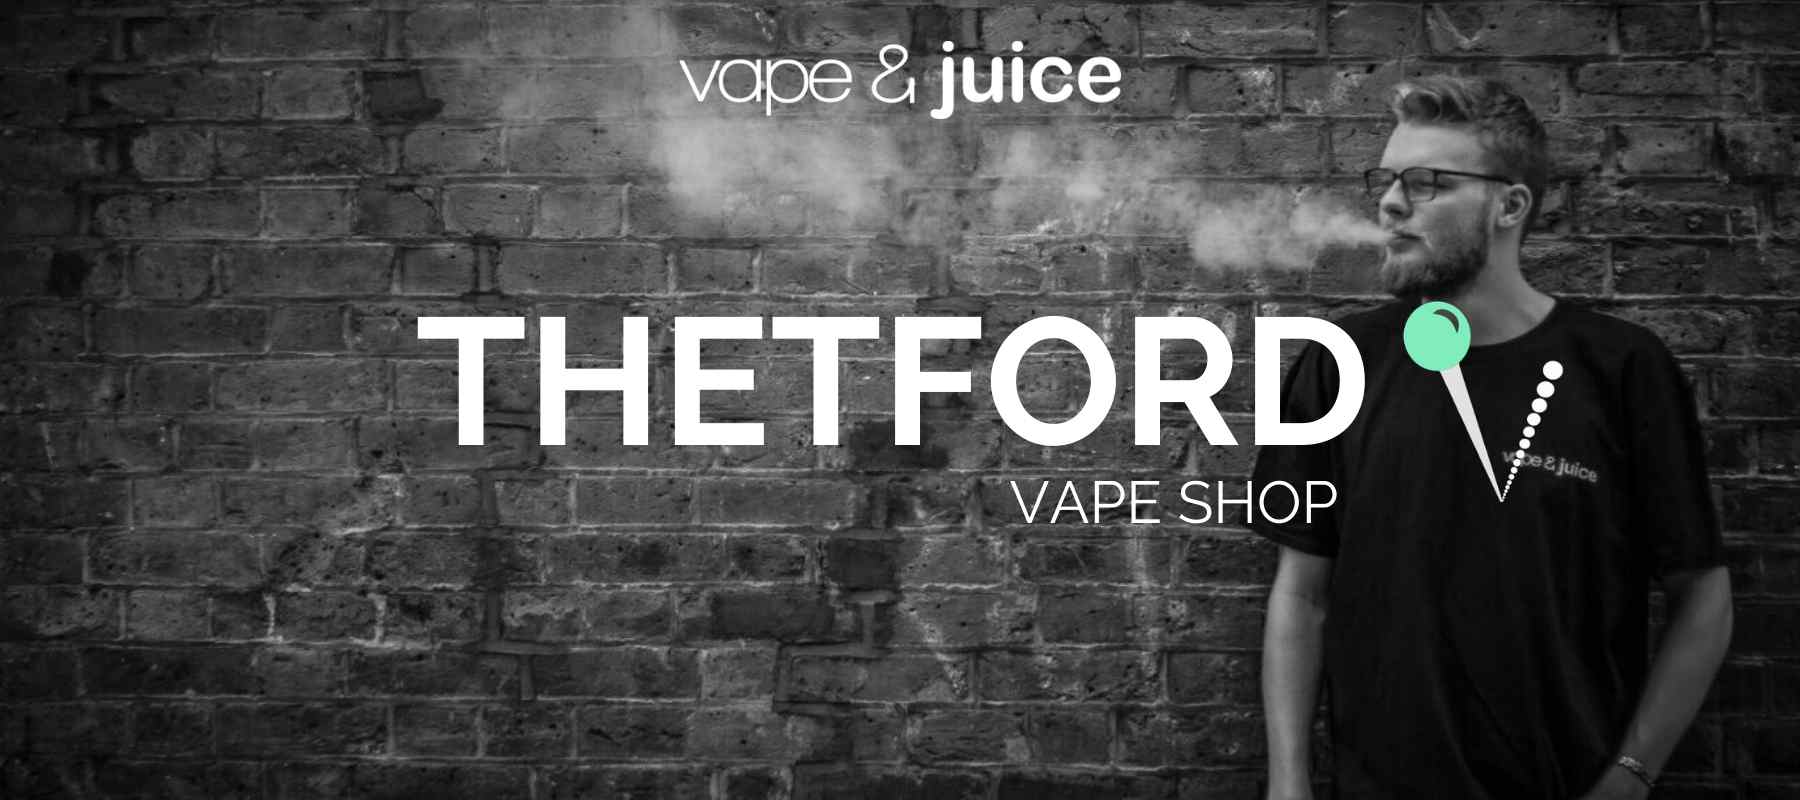 Is there a vape shop in thetford near me that sells ecigs pods juul and cbd?